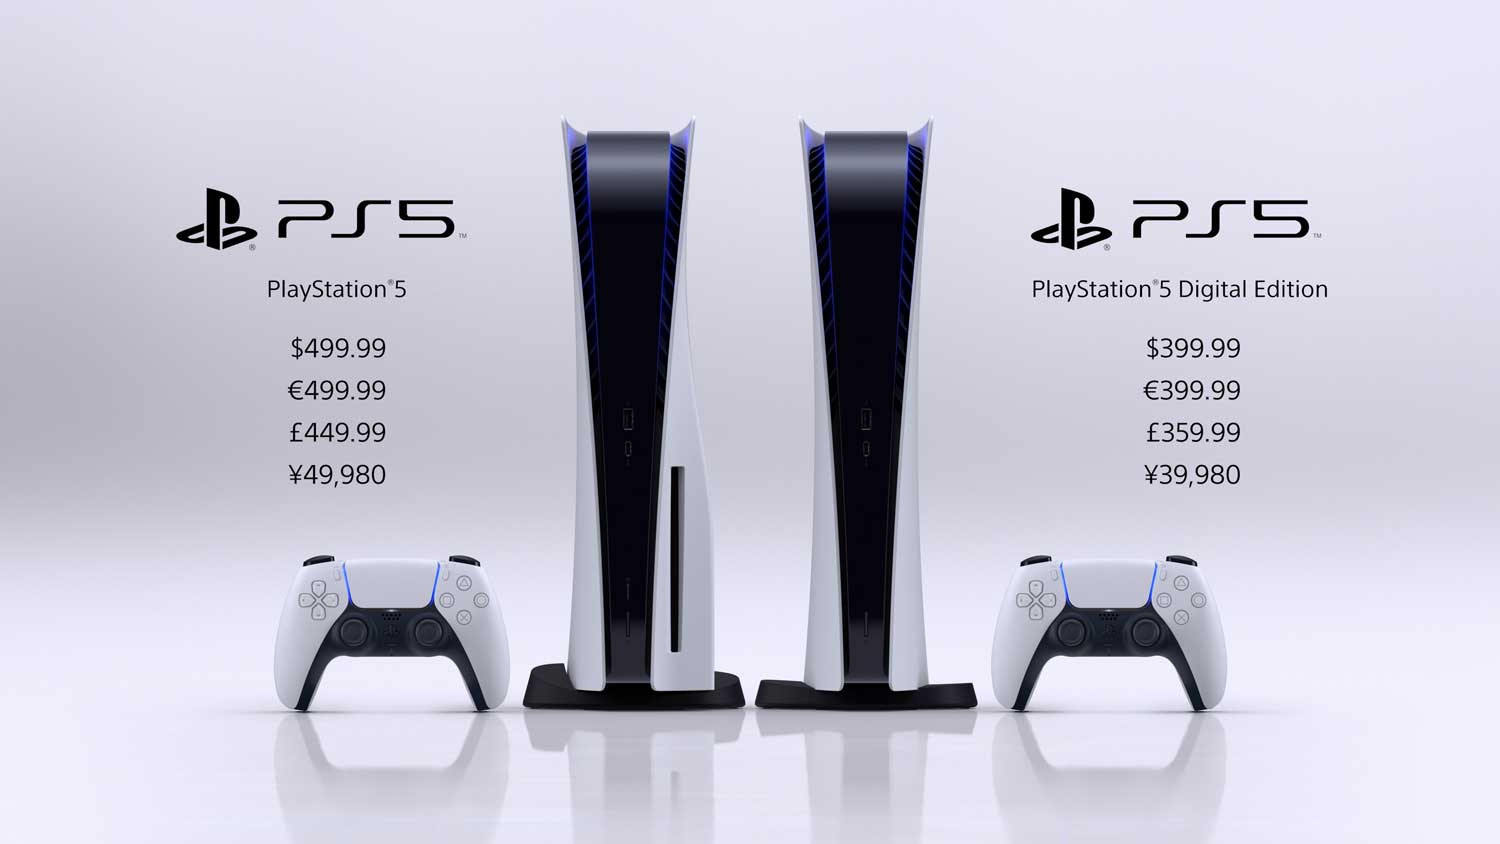 ps5 comparison with price